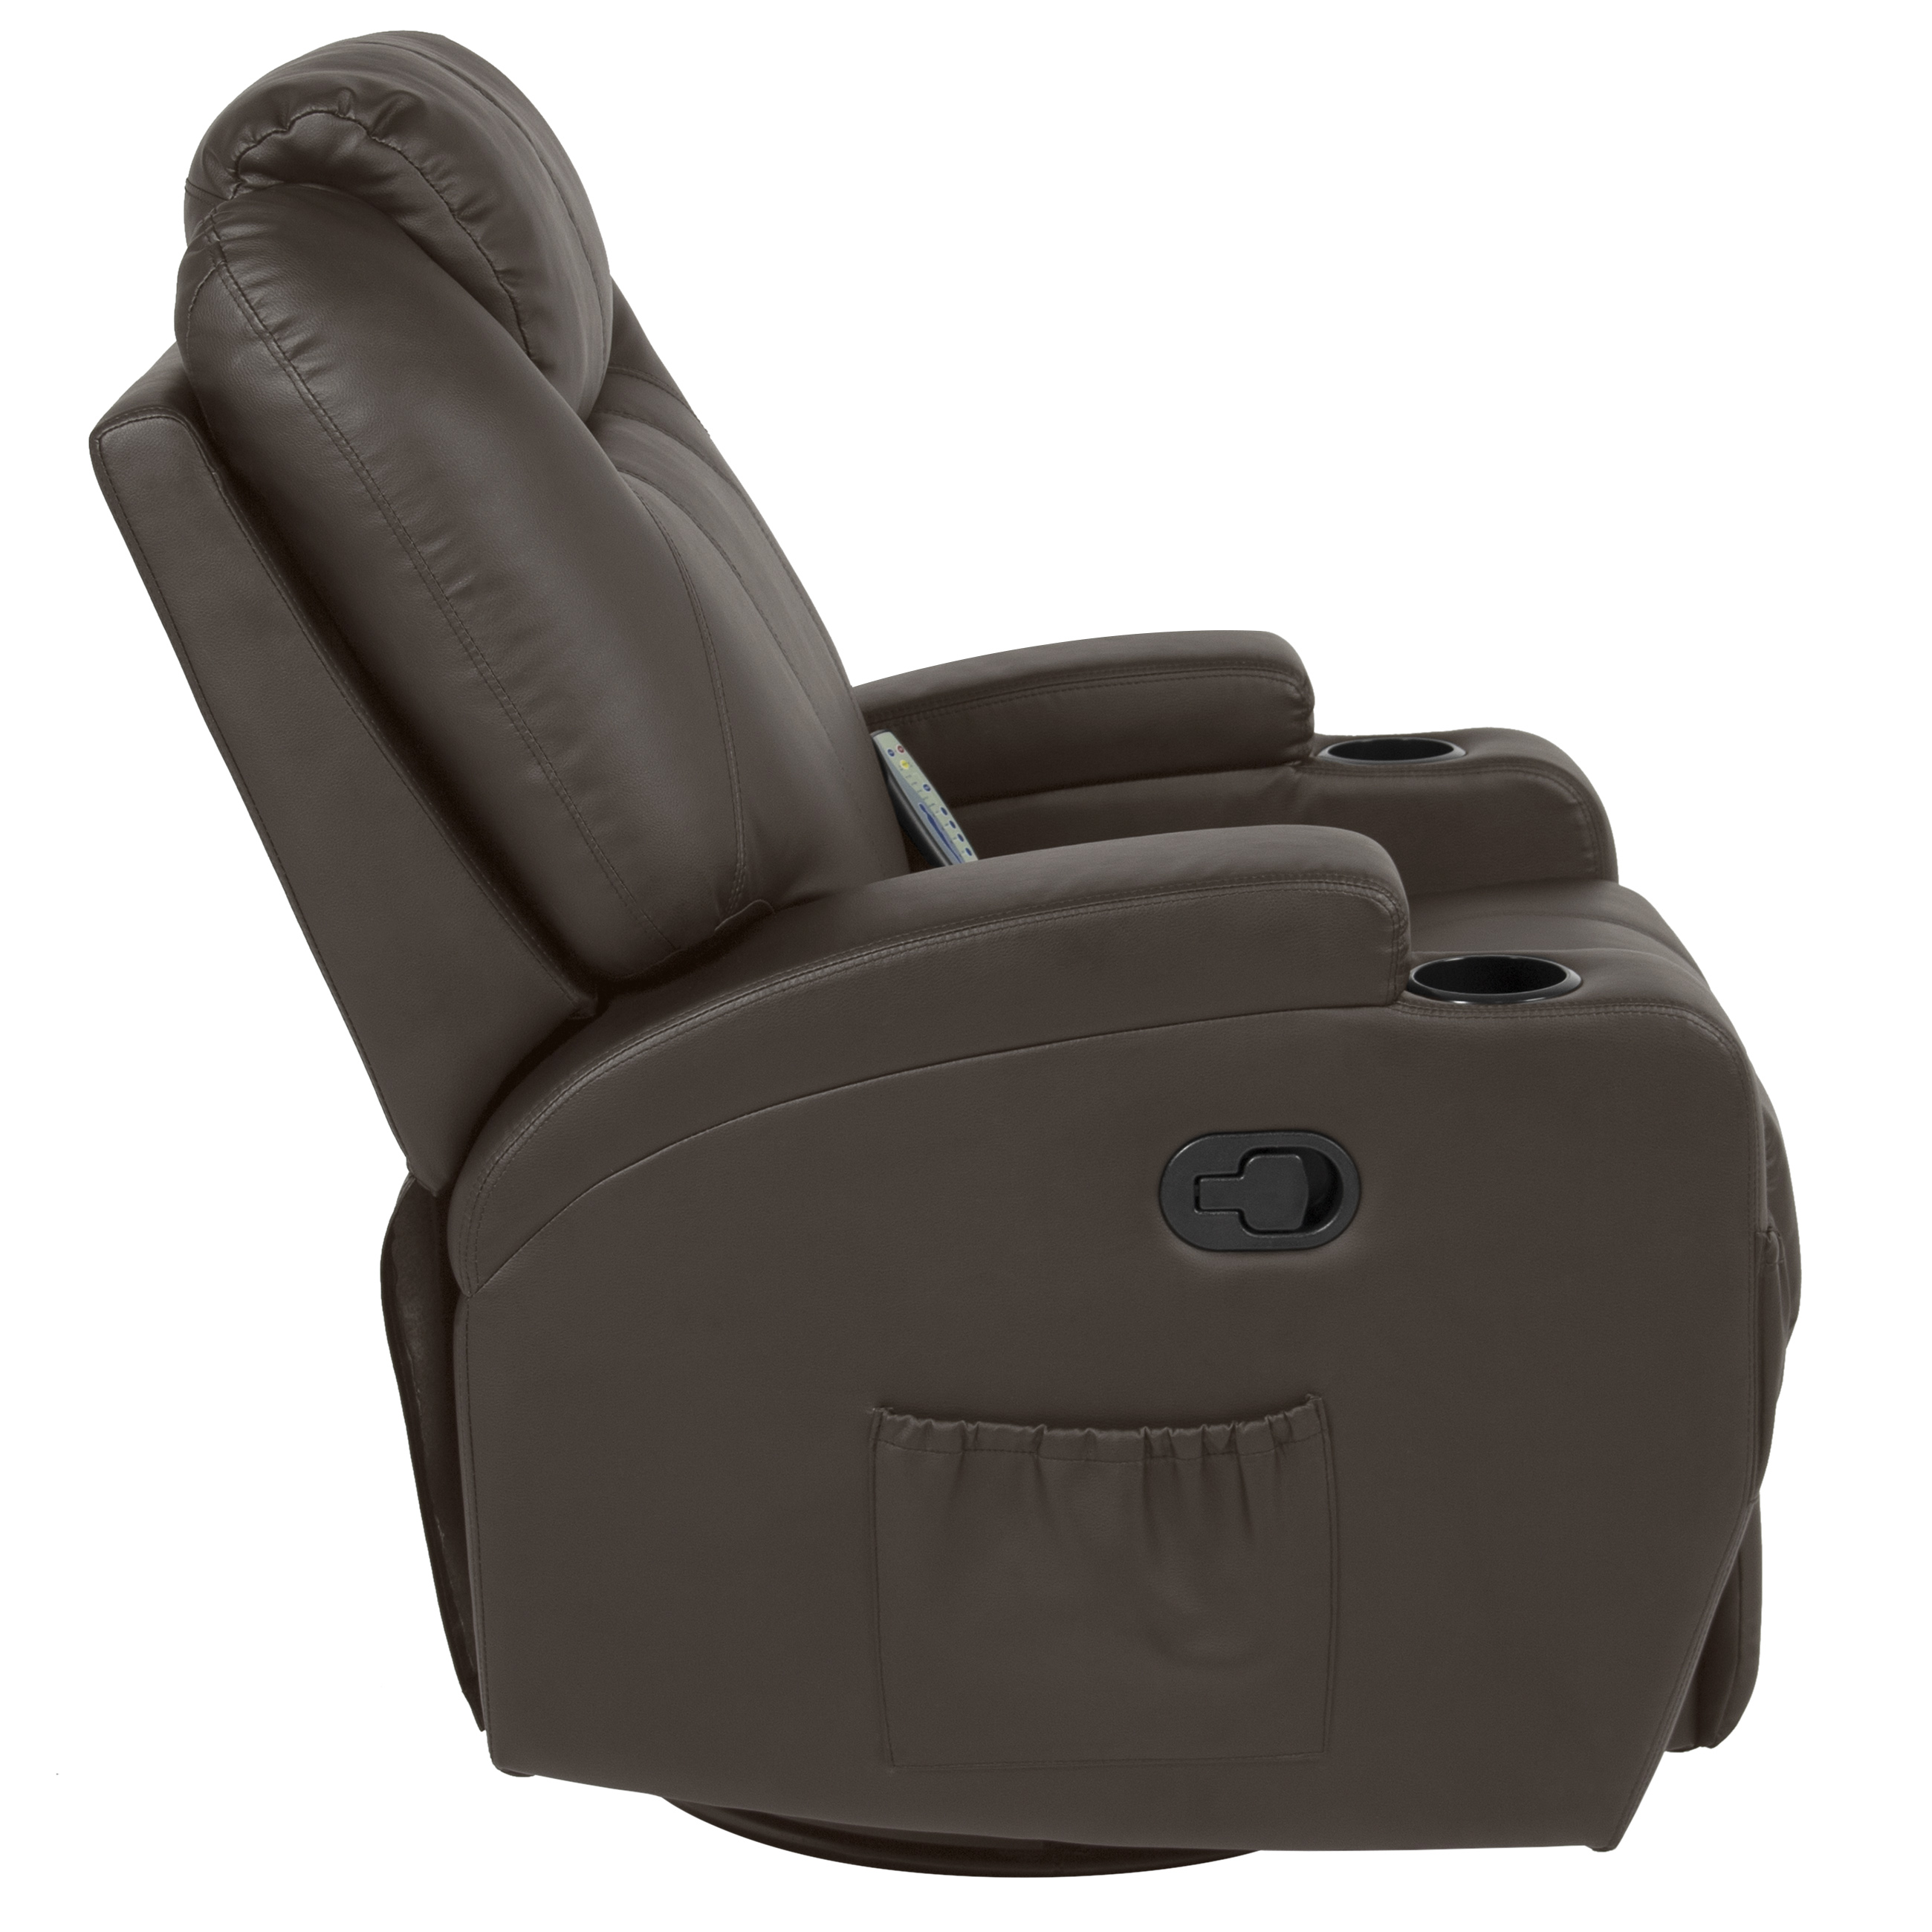 Chair Leather Reclining Swivel Best Choice Products Executive Pu Leather Swivel Electric Massage Recliner Chair W Remote Control 5 Heat Vibration Modes 2 Cup Holders 4 Pockets